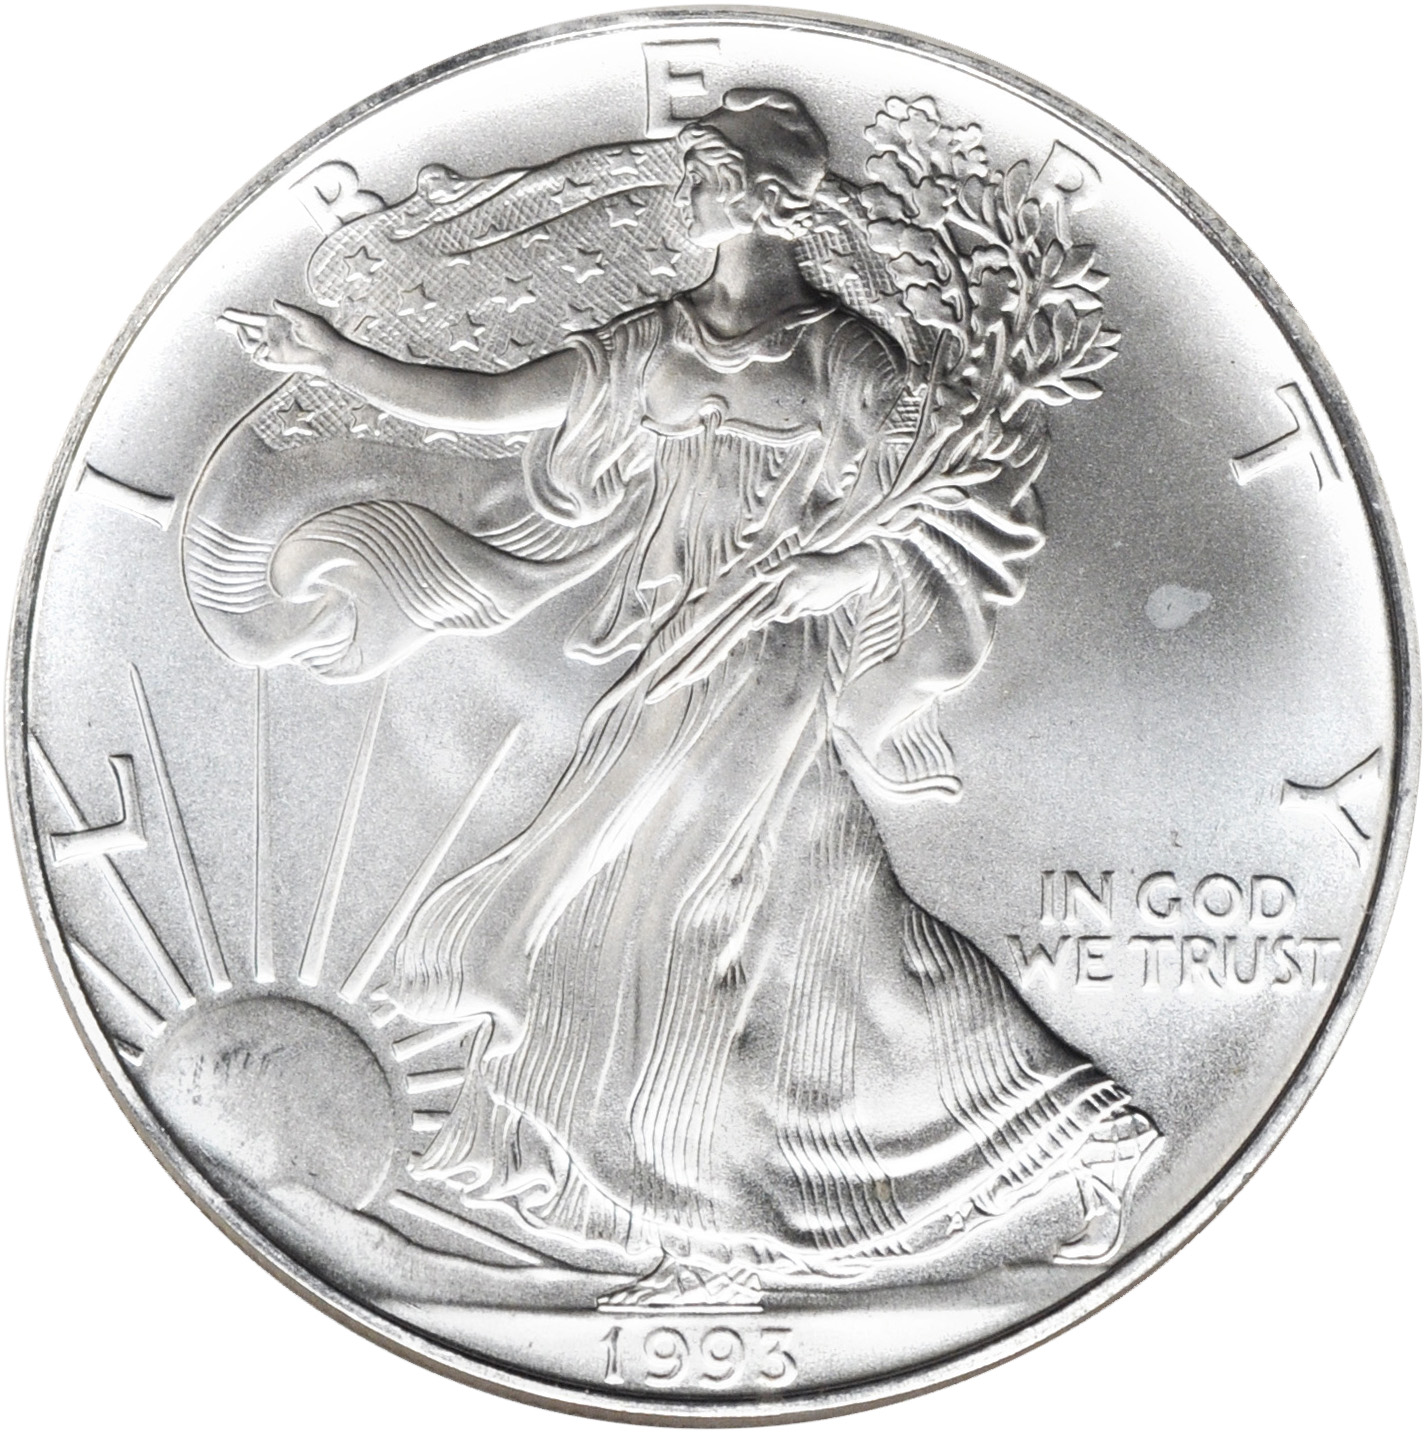 Value Of 1993 1 Silver Coin American Silver Eagle Coin